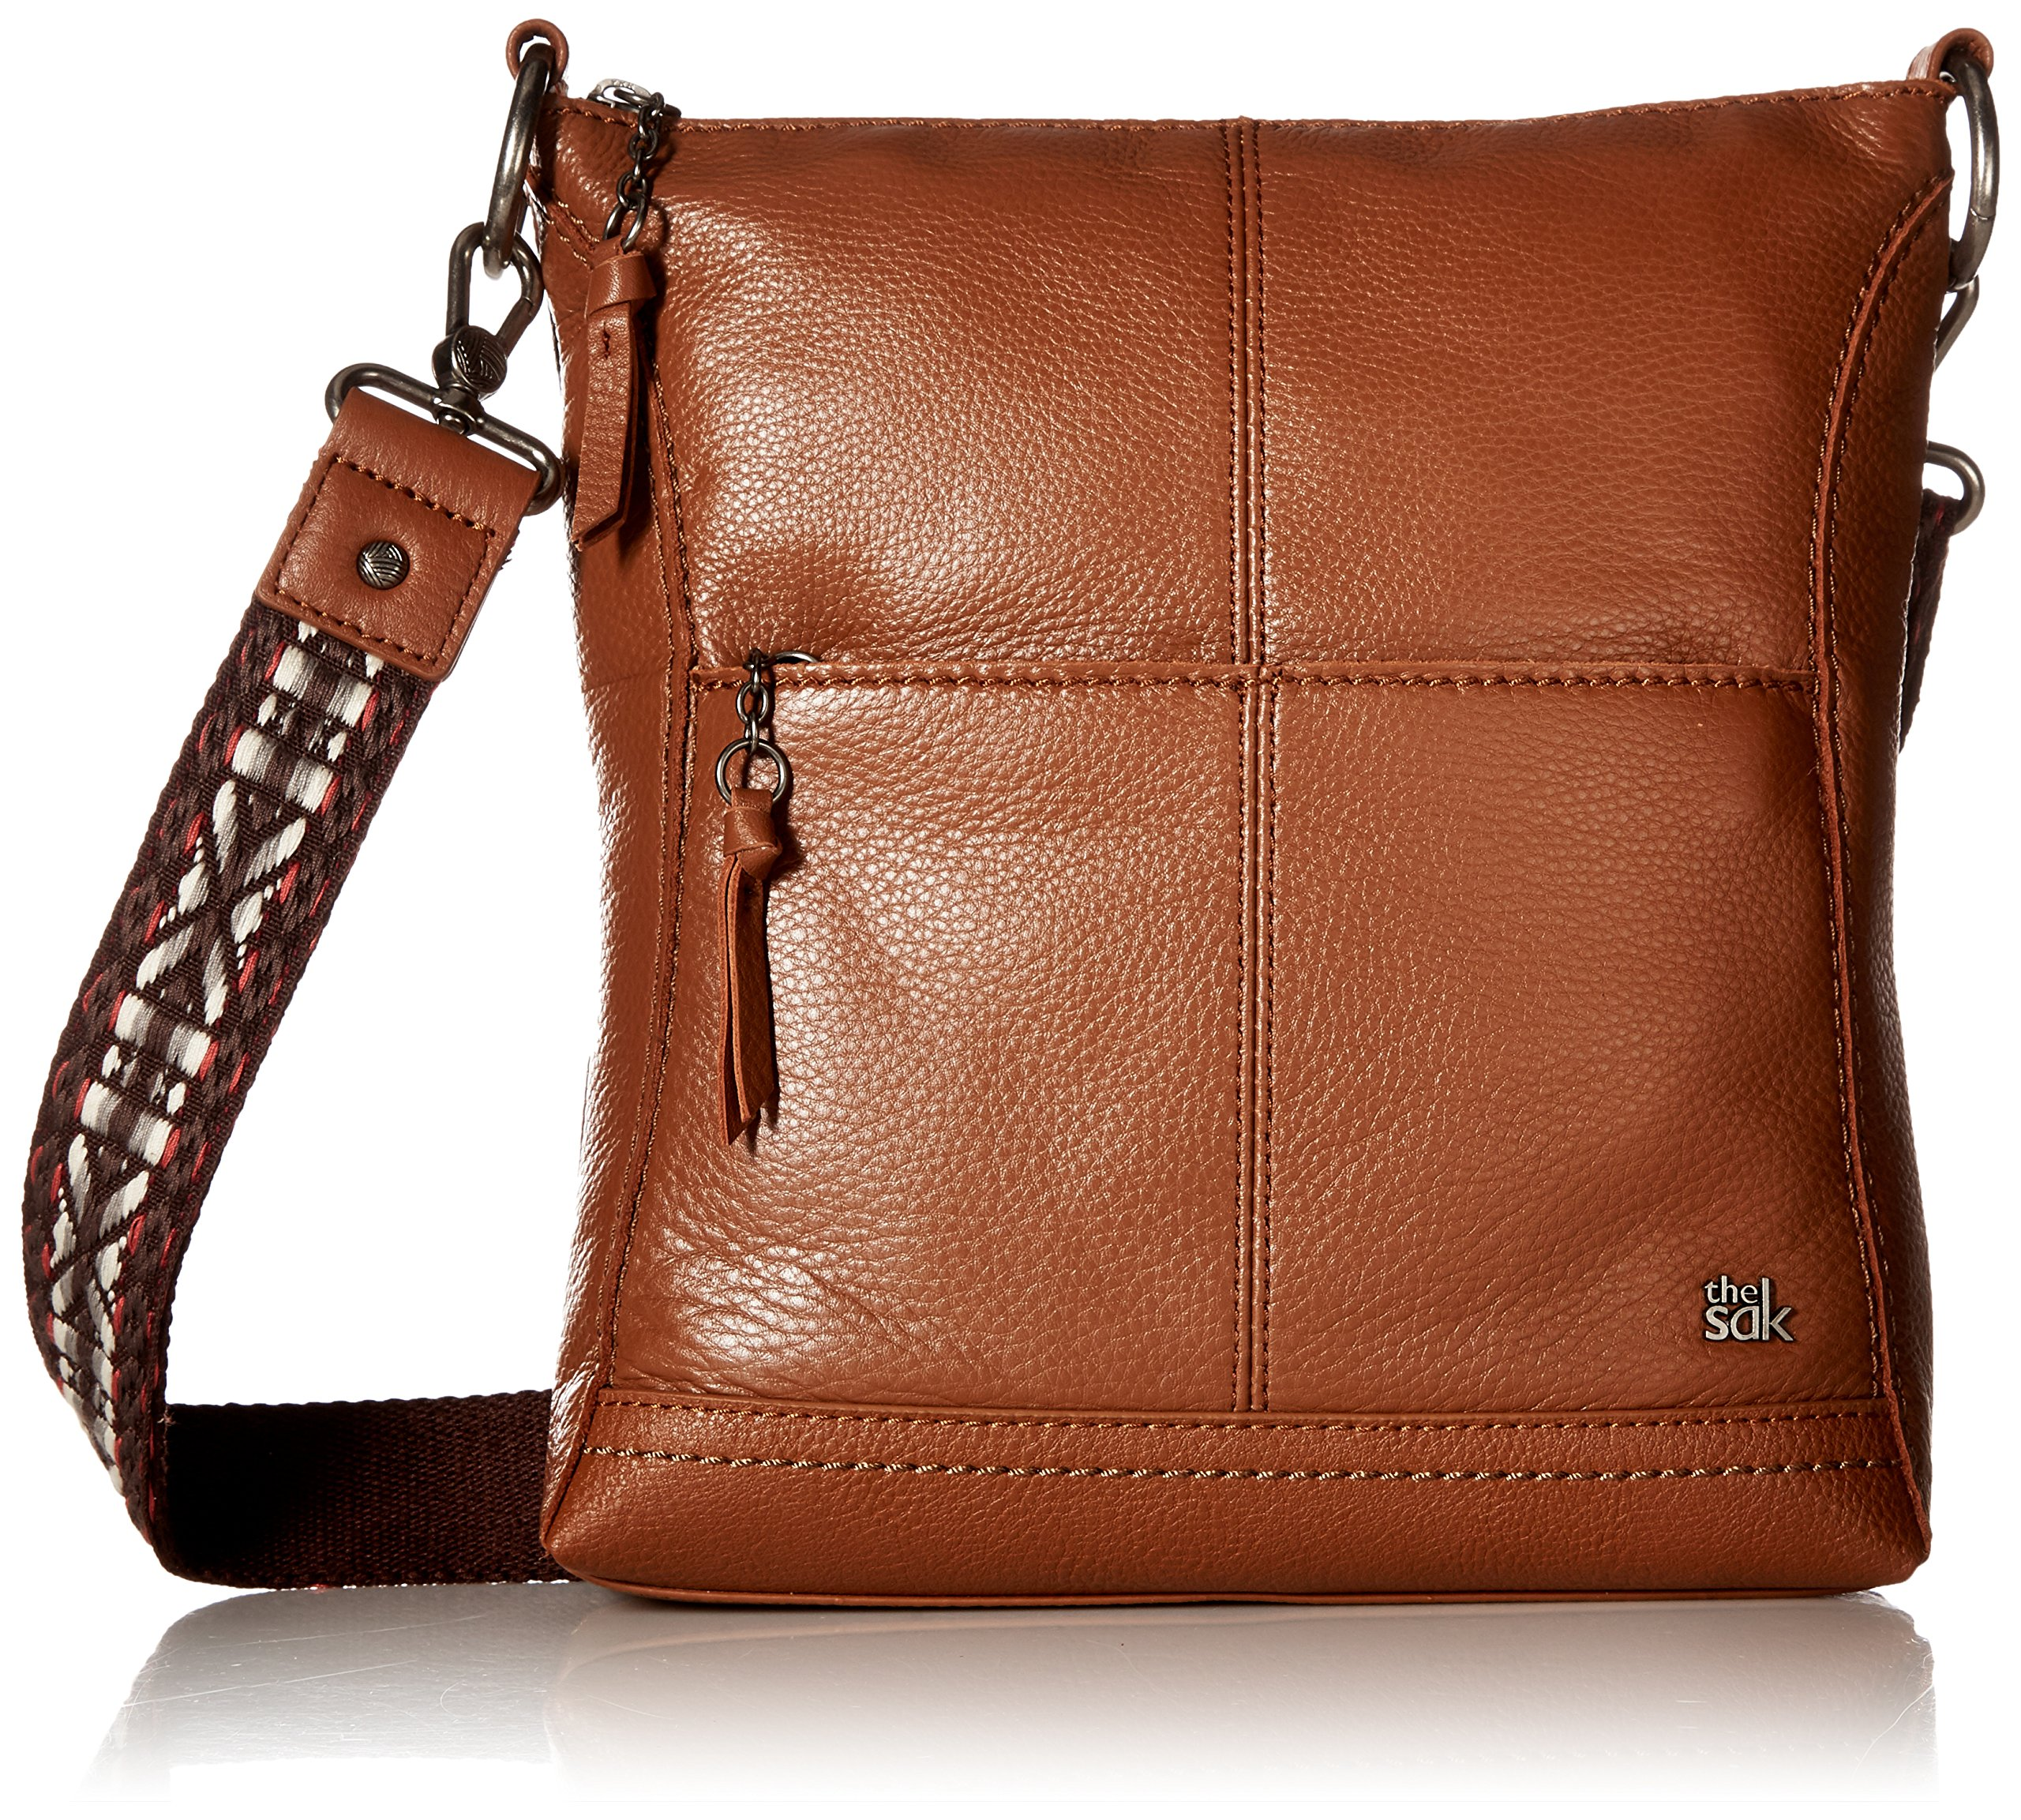 The Sak Women's Lucia Crossbody Tobacco Crossbody Bag